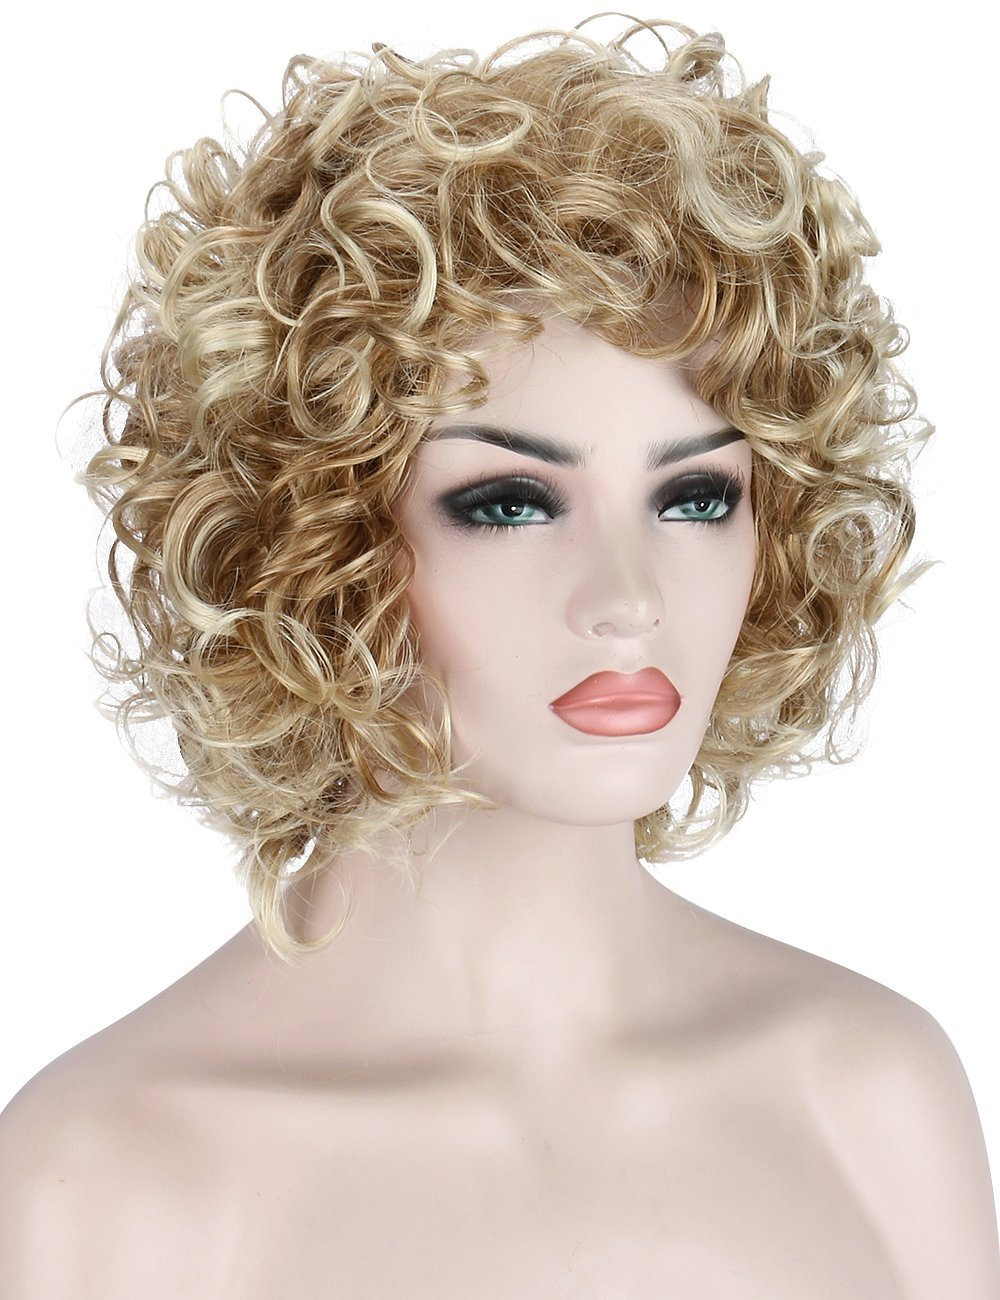 Awesome Lovely Short Wig Curly Blonde Mix Summer Style Skin Top Ladies Wigs Buy Online In Brunei At Desertcart